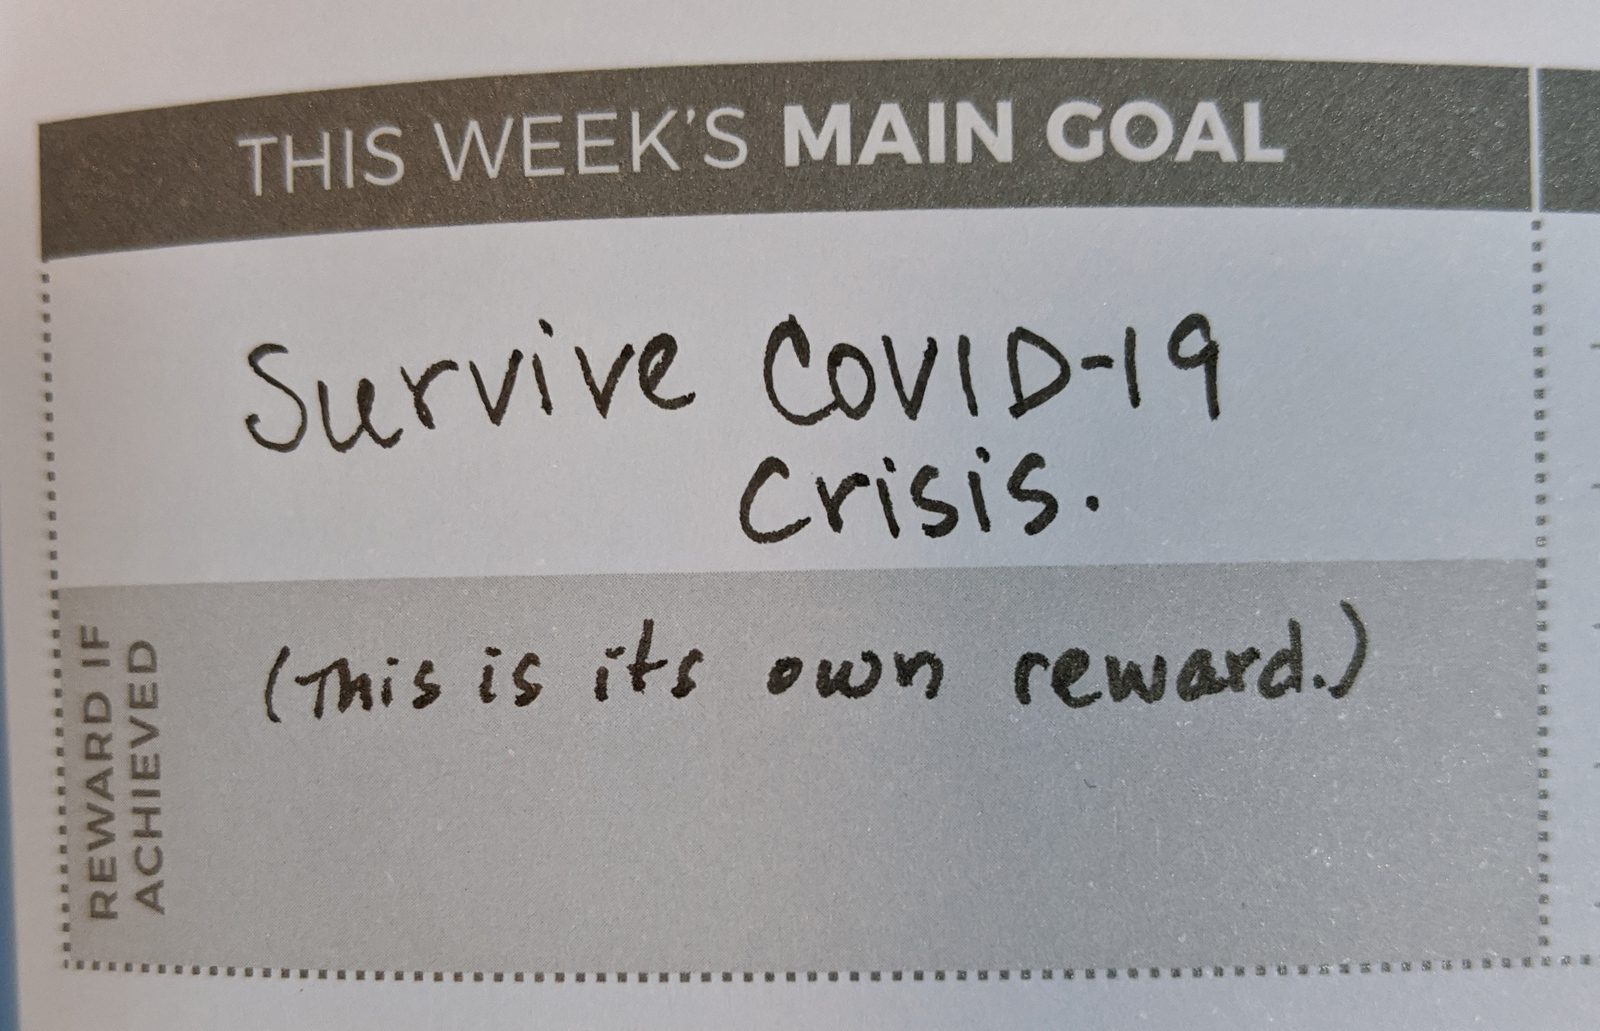 Main Goal, foreseeable future: Survive COVID-19 crisis.